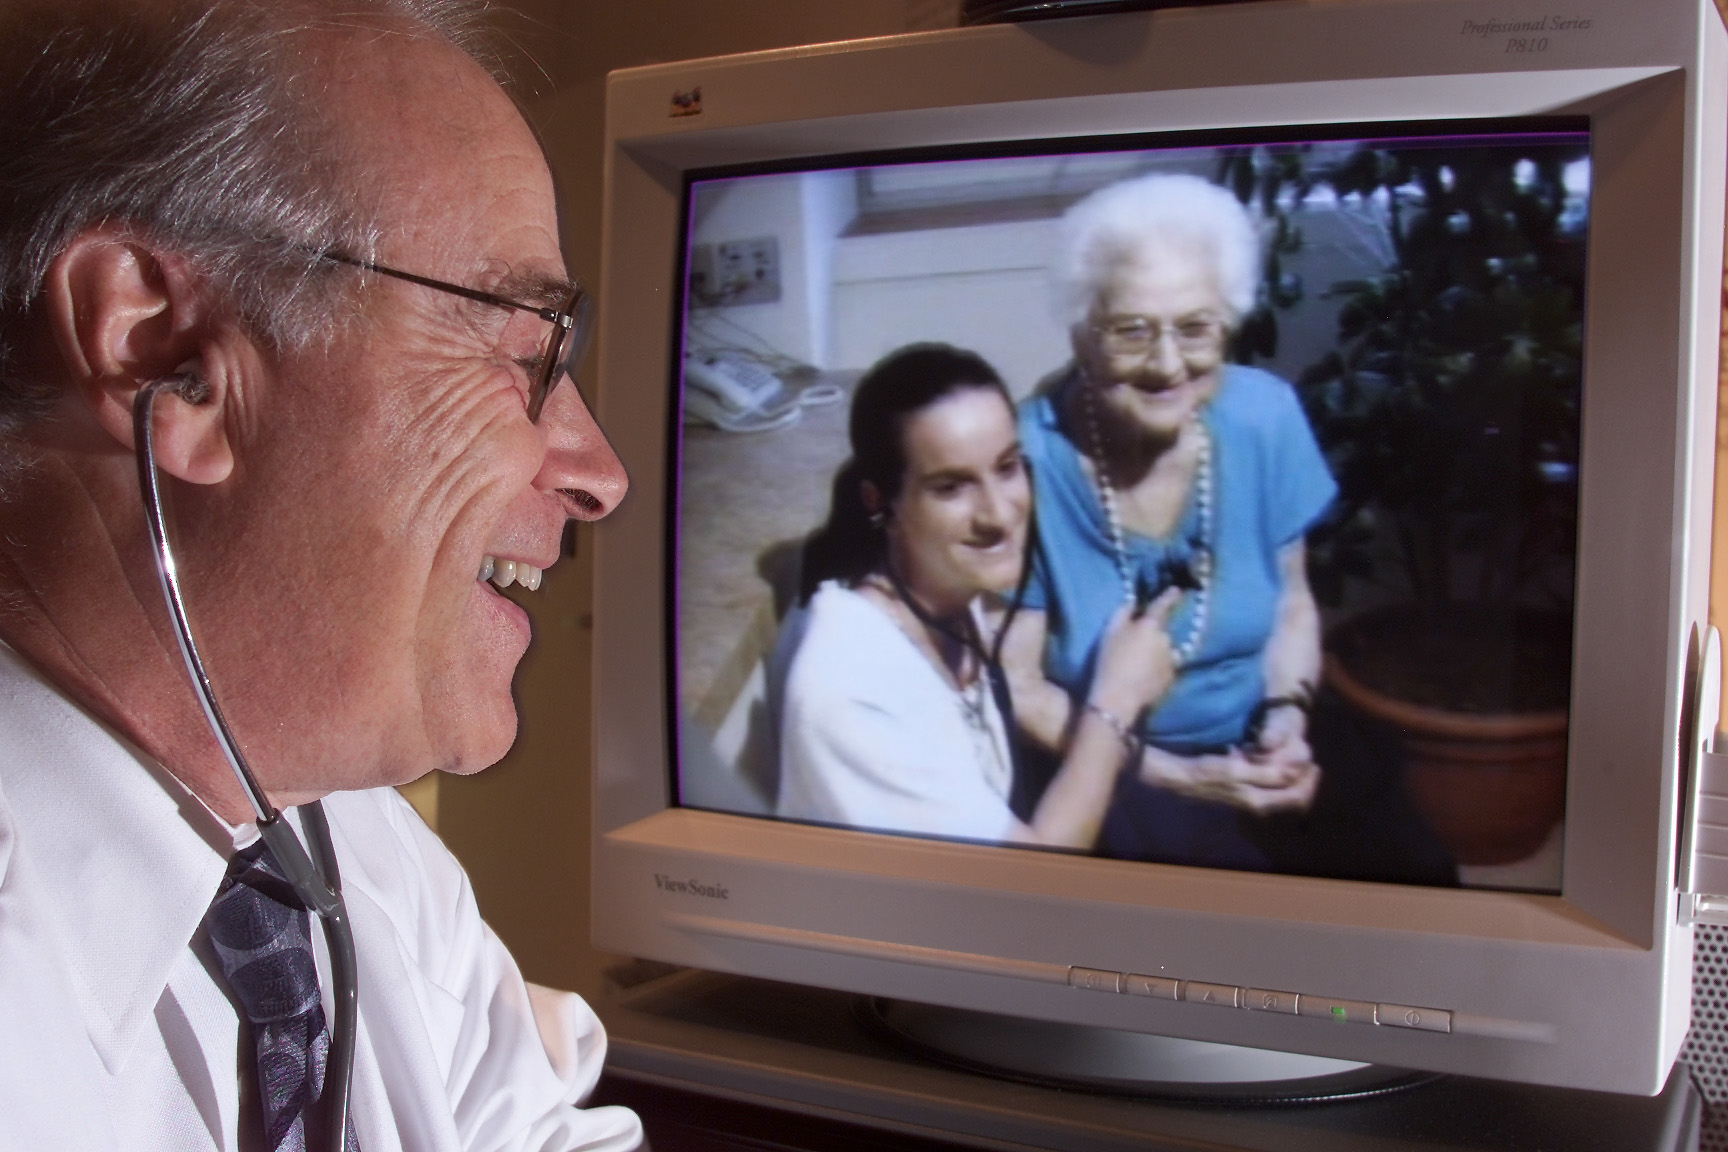 telehealth in rural healthcare Telemedicine is a useful tool for anyone, but it's vital in a rural setting telehealth is increasingly an option for patients looking for fast and affordable care.